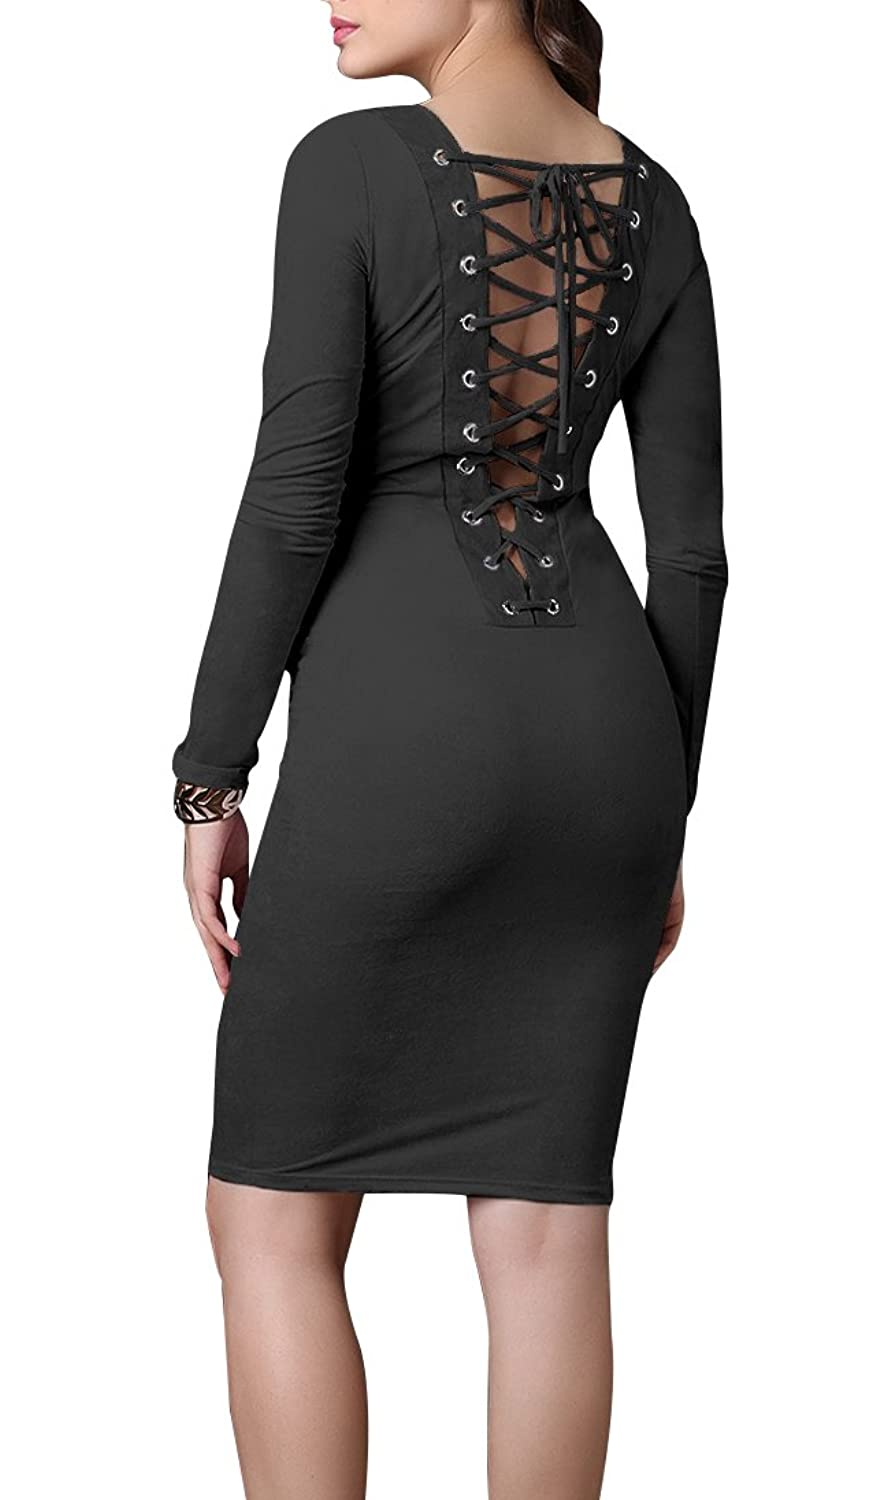 7fee61fa08d Top 10 wholesale Long Sleeve Bandage Bodycon Dress - Chinabrands.com